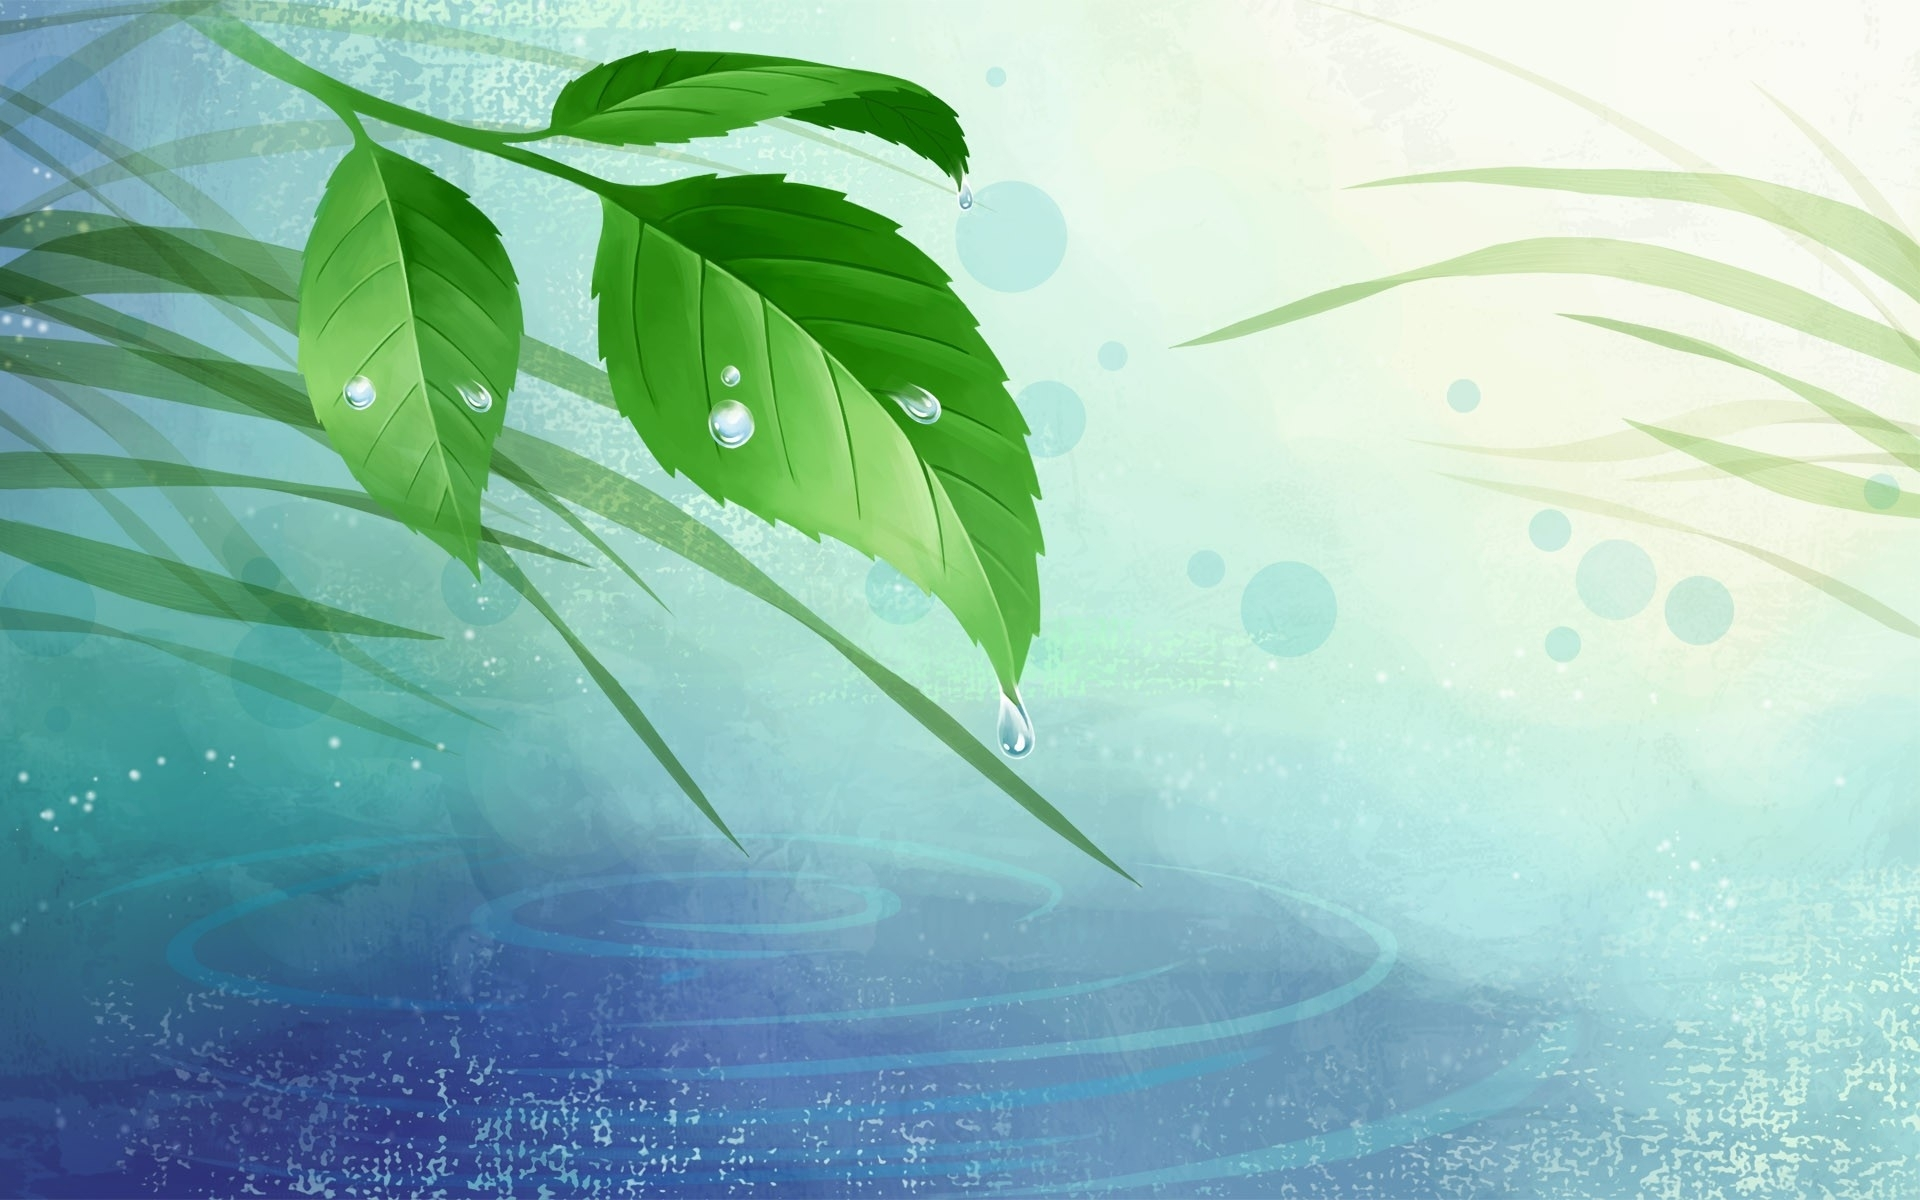 Abstract Leaves & Water wallpapers | Abstract Leaves & Water stock ...